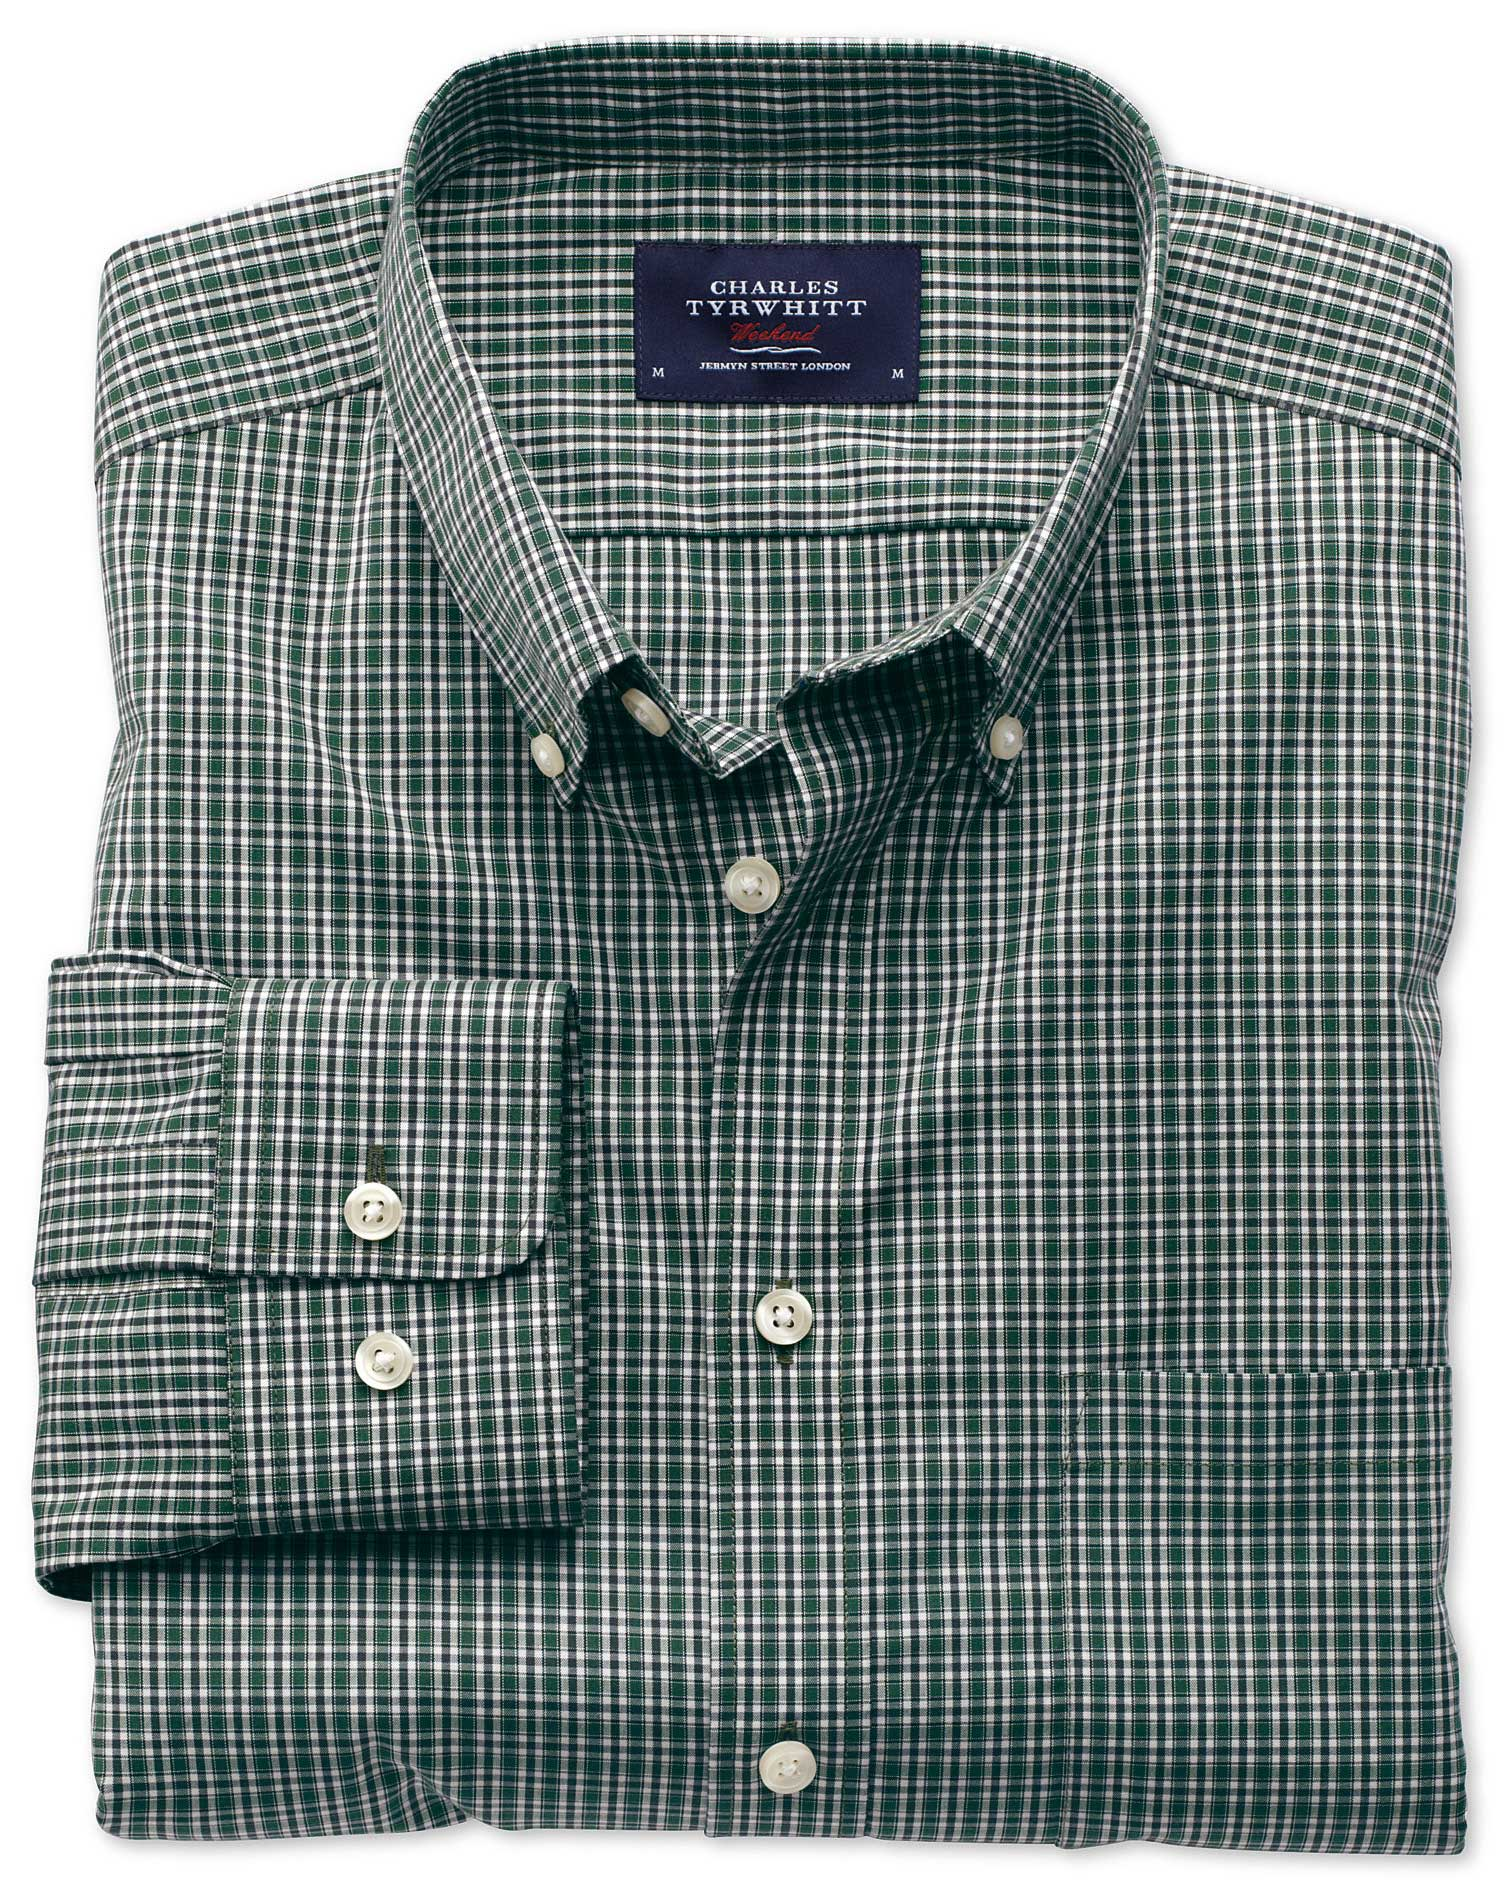 Classic Fit Non-Iron Poplin Green and Blue Check Cotton Shirt Single Cuff Size XXXL by Charles Tyrwh